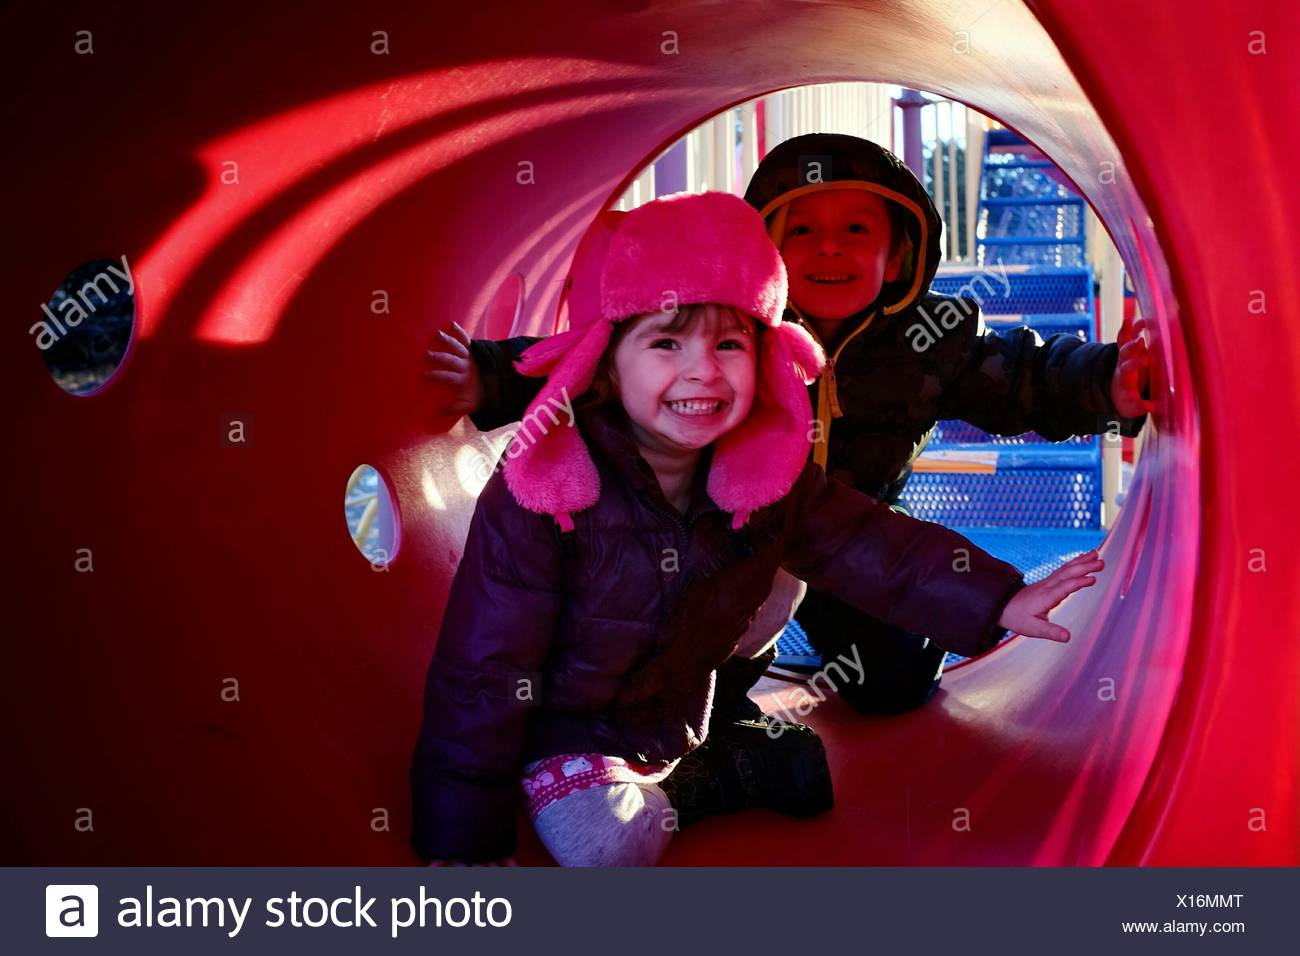 Les enfants en aire de tunnel Photo Stock